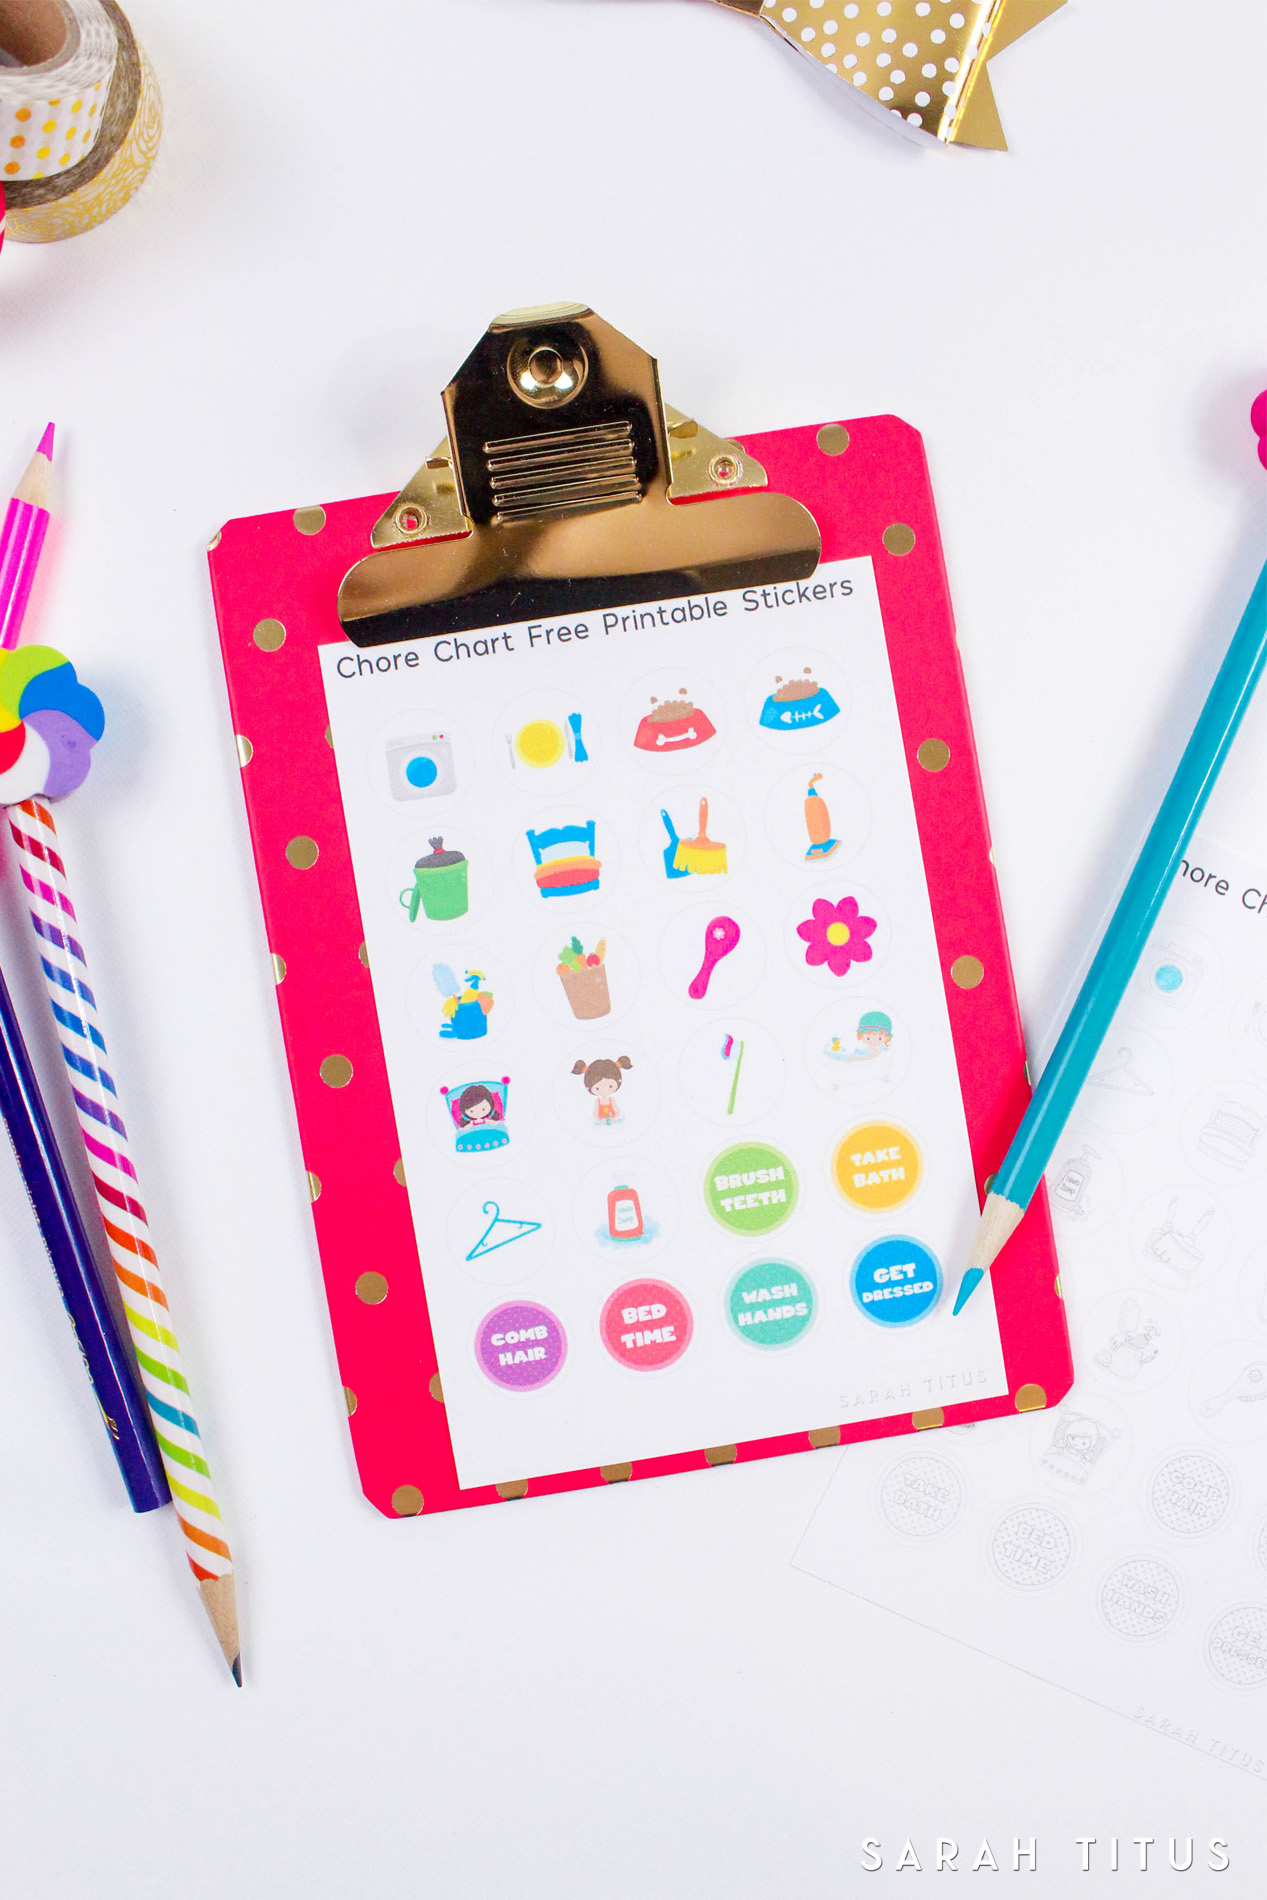 ThisFree Printable Chore Chart Stickers will motivate your kids to help keep your home clean and organized! Plus there's also a cute version for them to color!